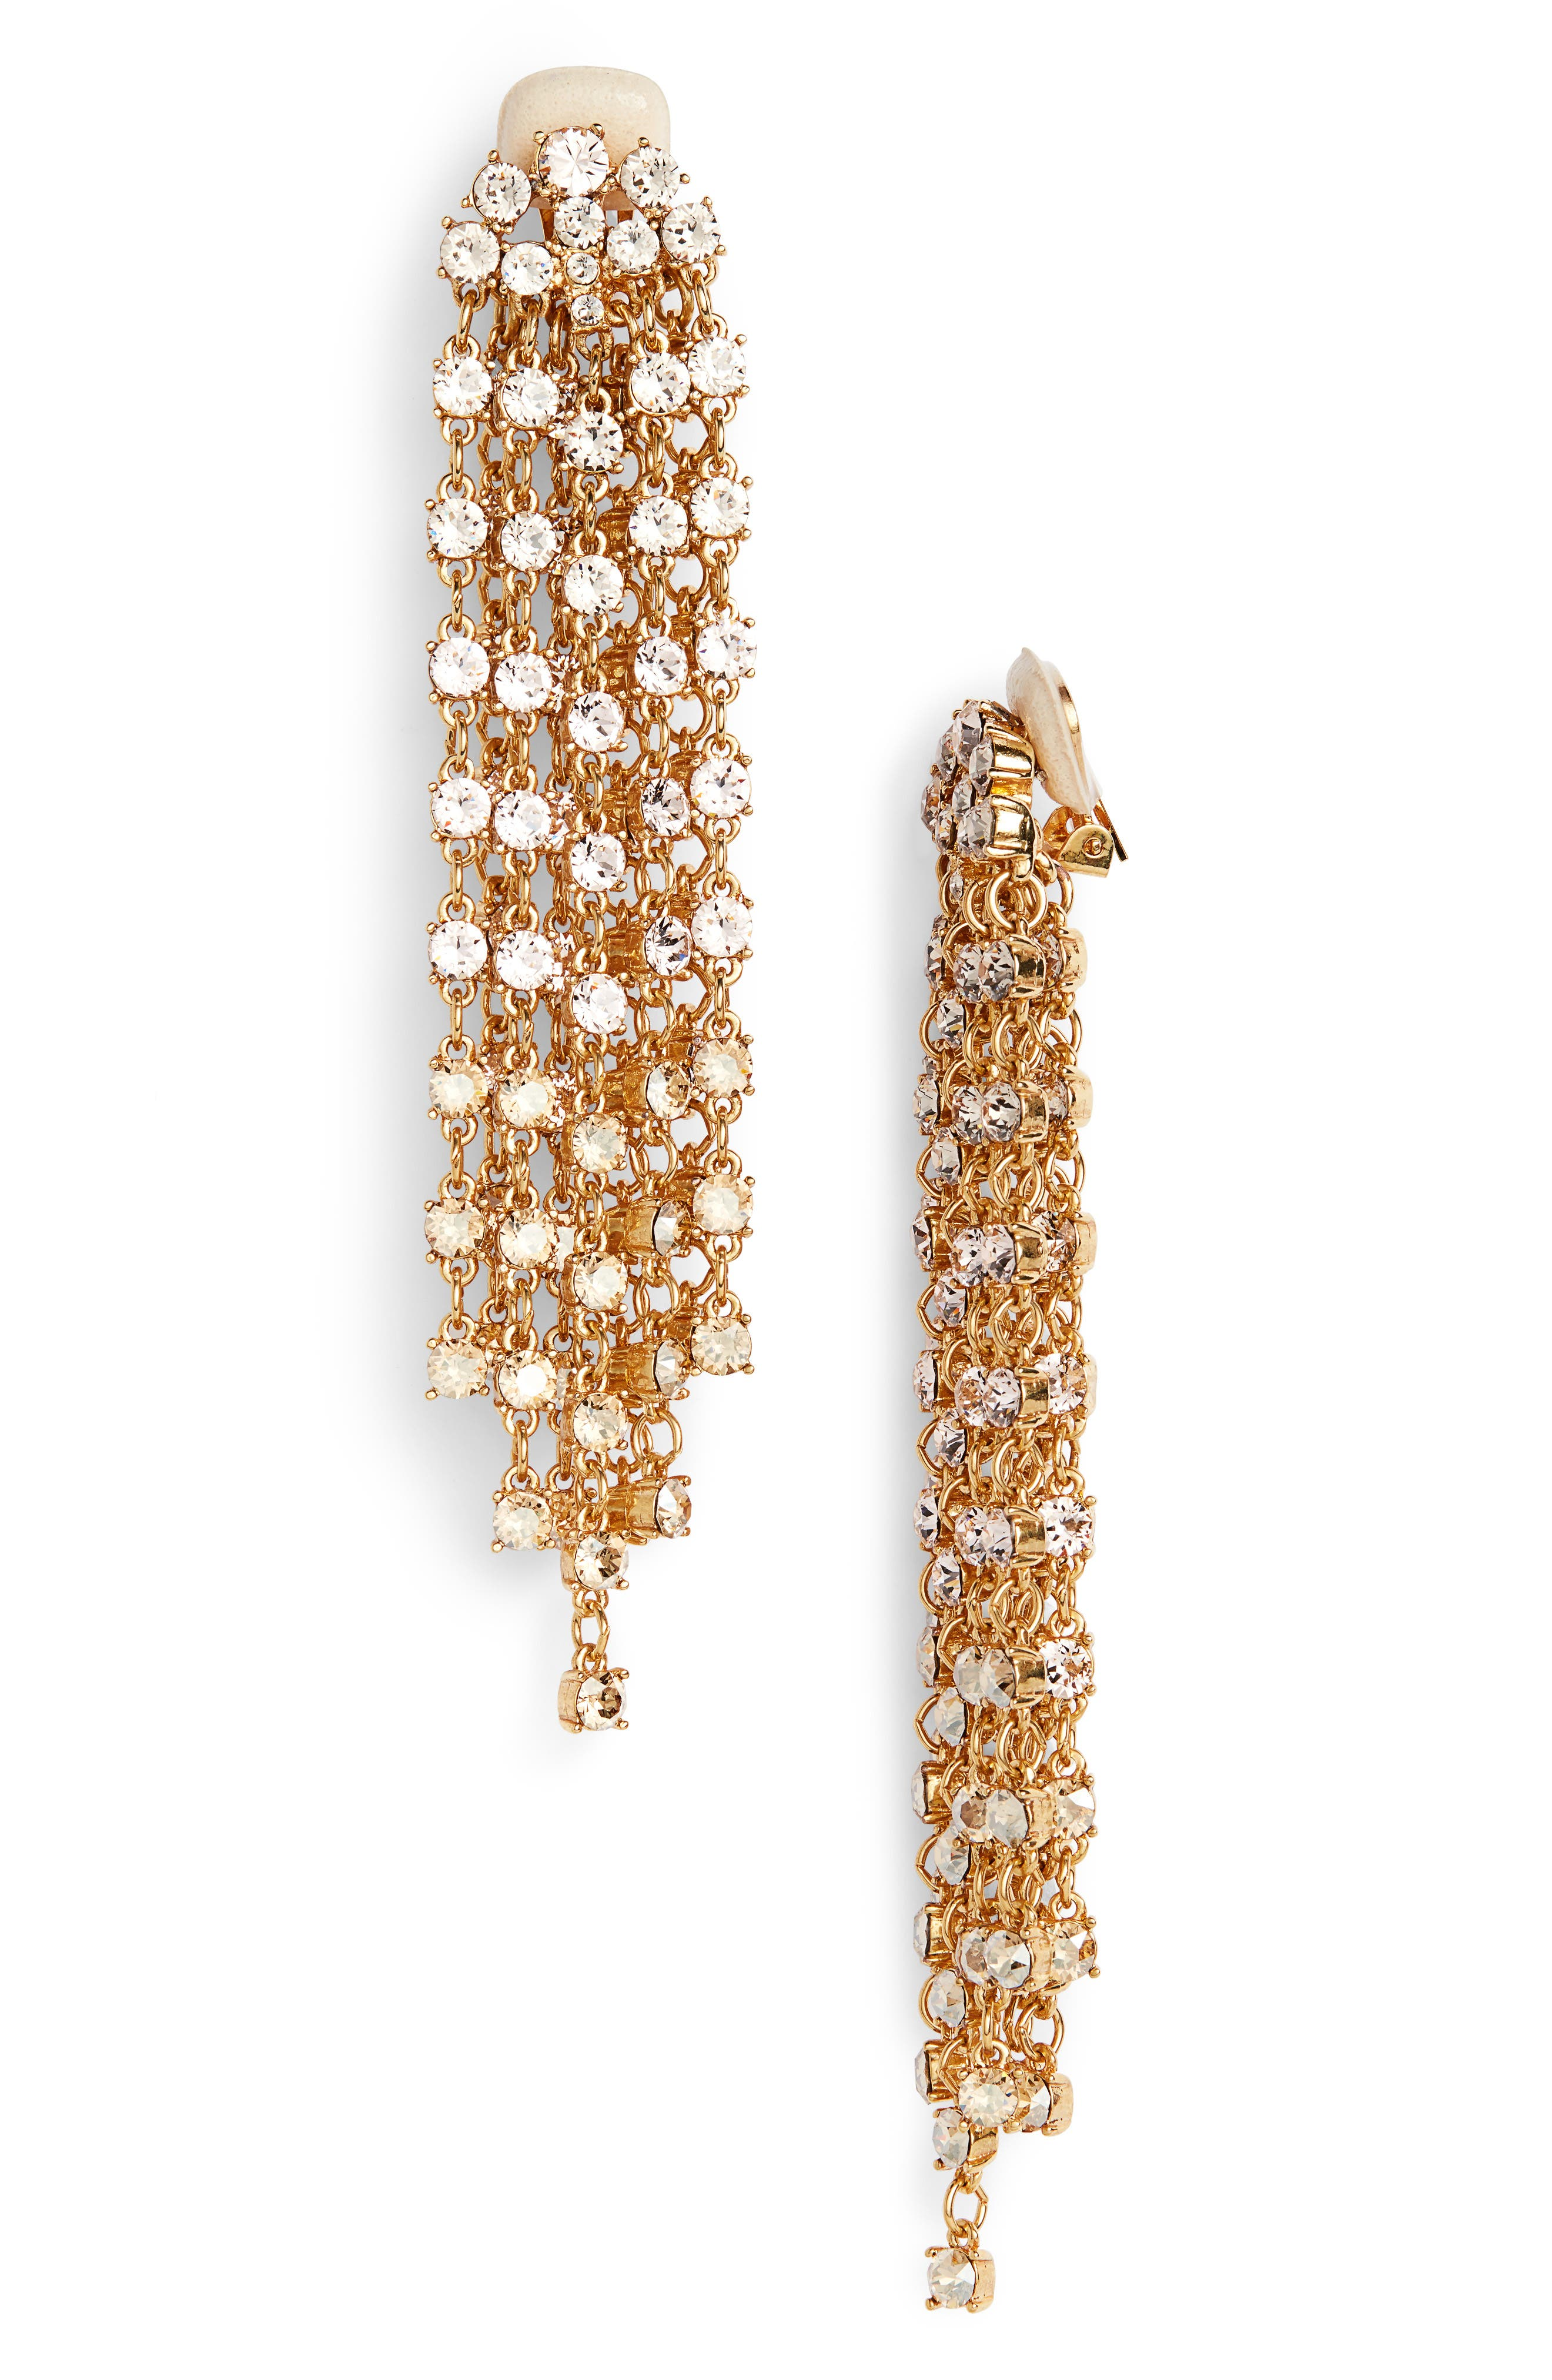 Crystal Cascade Waterfall Drop Earrings,                         Main,                         color, Cry Gold Shadow